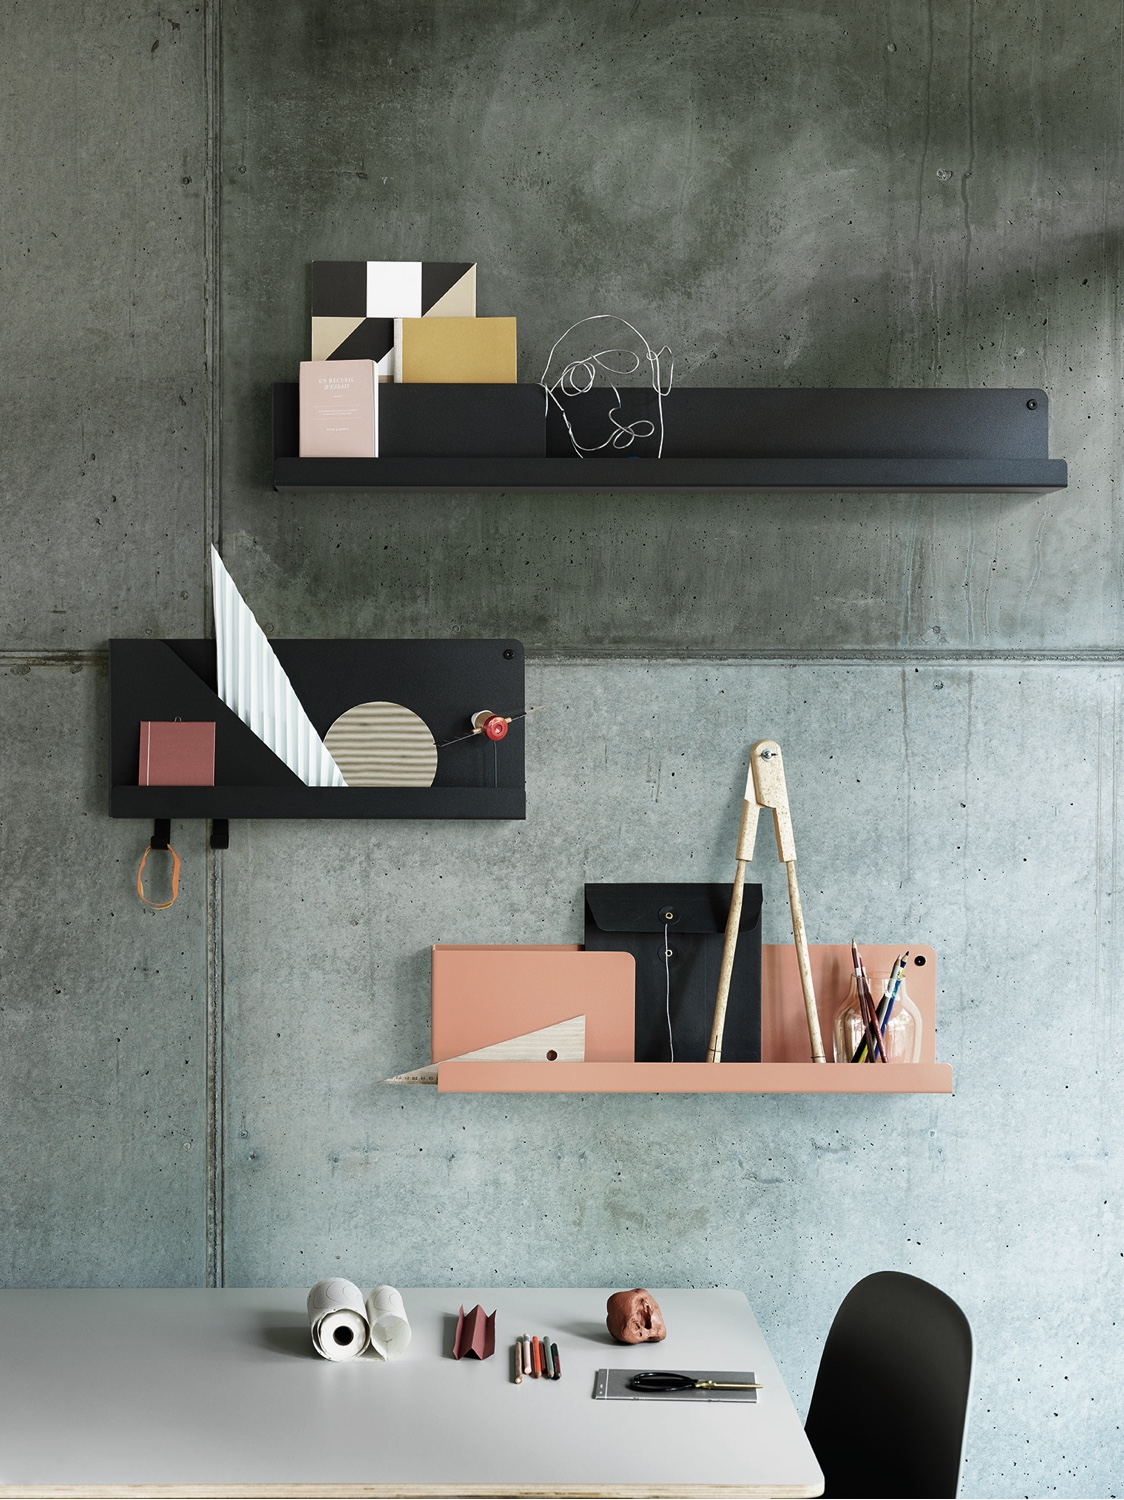 FOLDED by the Dutch designer Johan Van Hengel for Muuto. Image courtesy of Muuto.